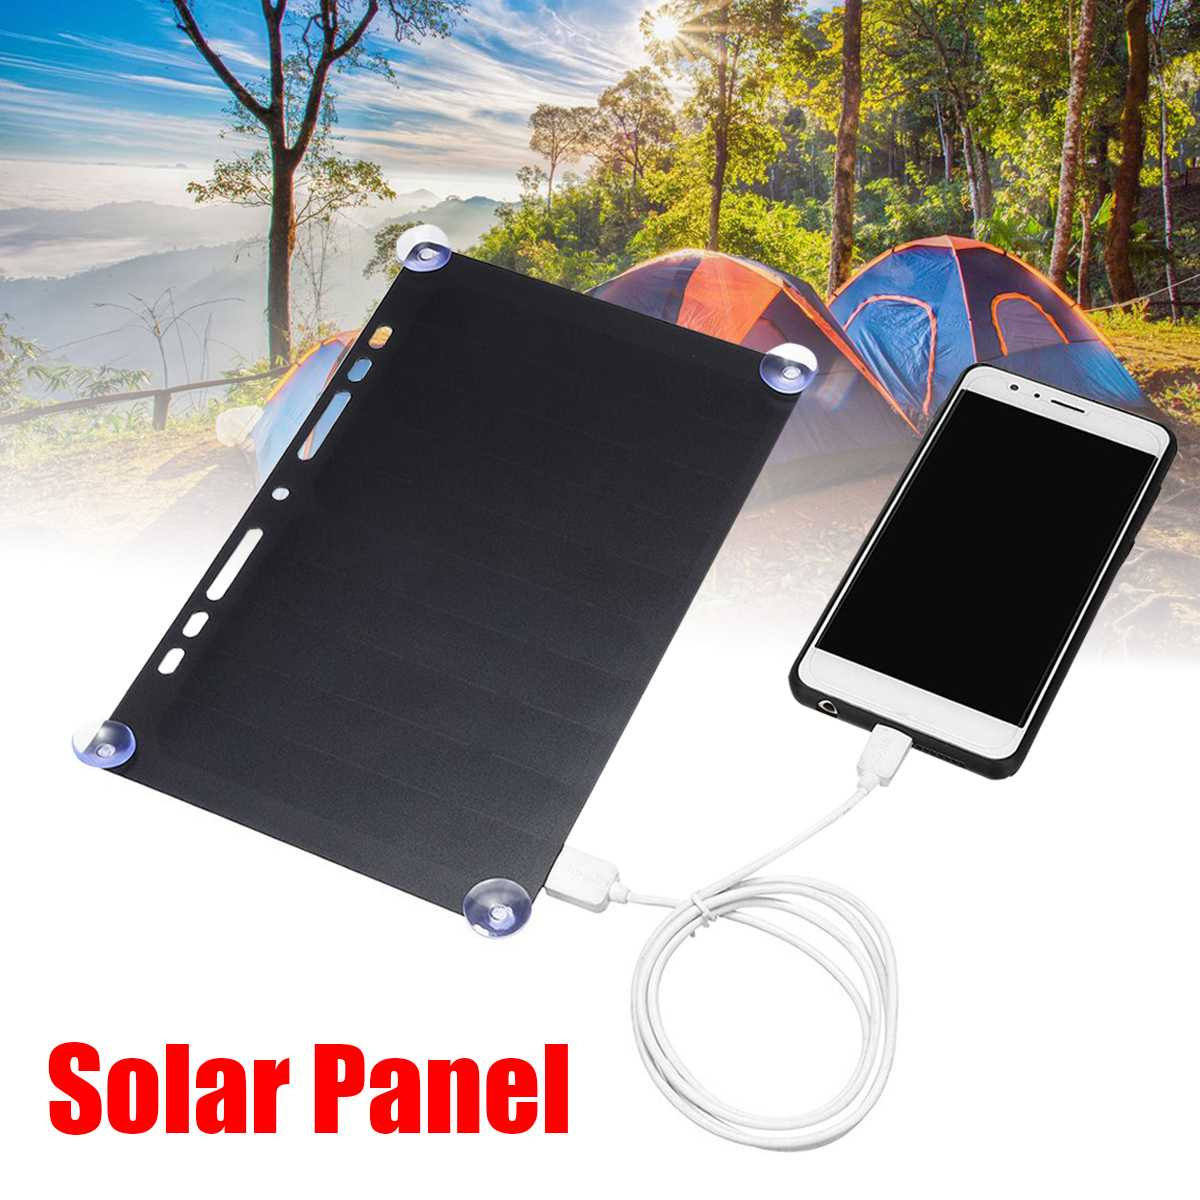 Portable <font><b>Solar</b></font> Power Charging <font><b>Panel</b></font> <font><b>5V</b></font> <font><b>10W</b></font> USB Charger For Mobile Phone Tablet Frame Design for Traveling Camping Ultra Thin image